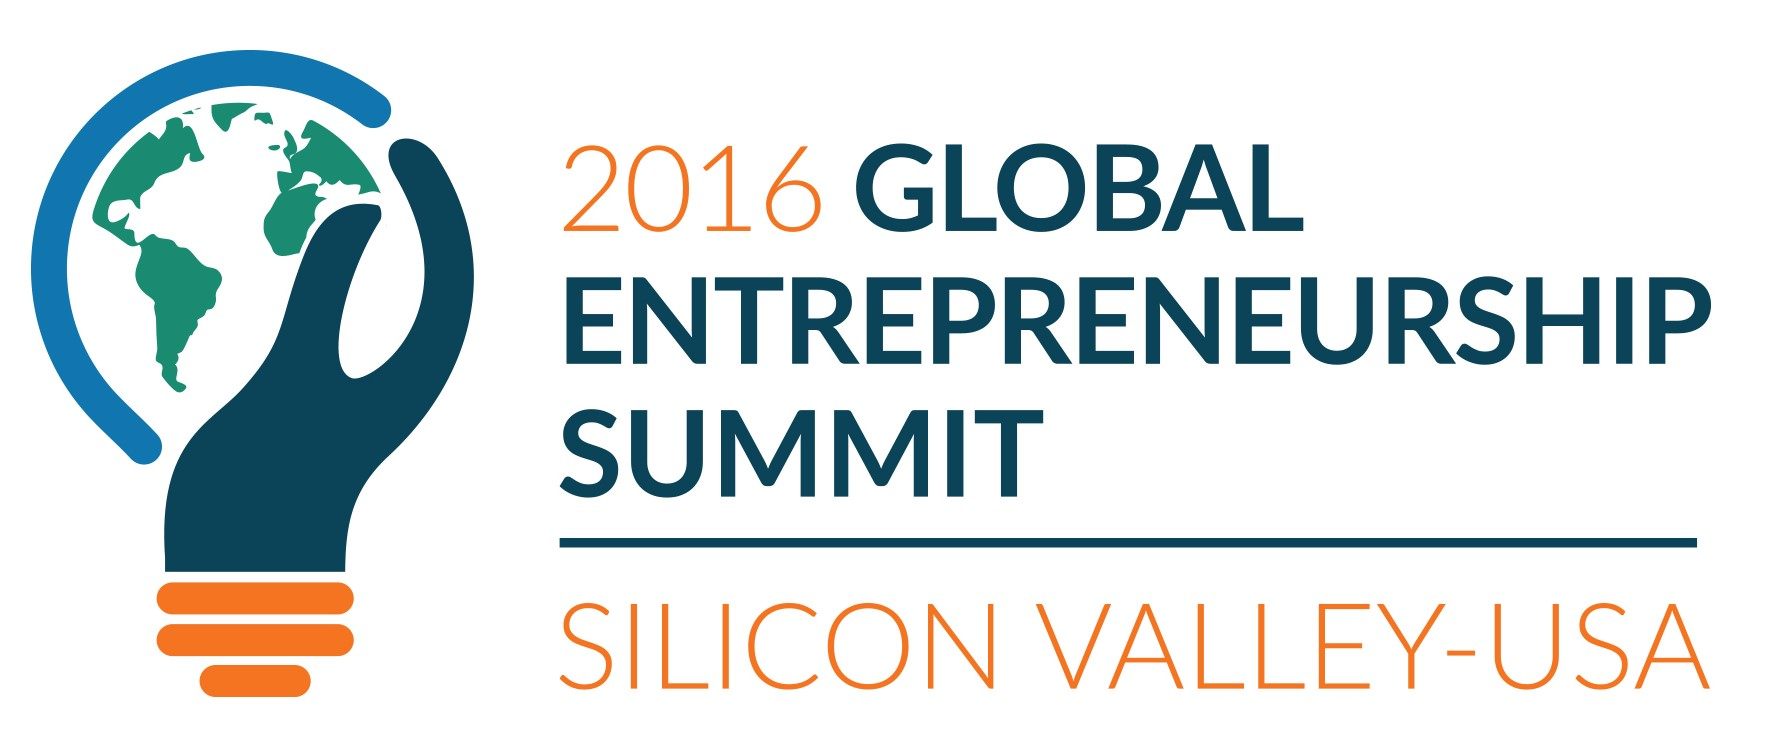 Global Entrepreneurship Summit